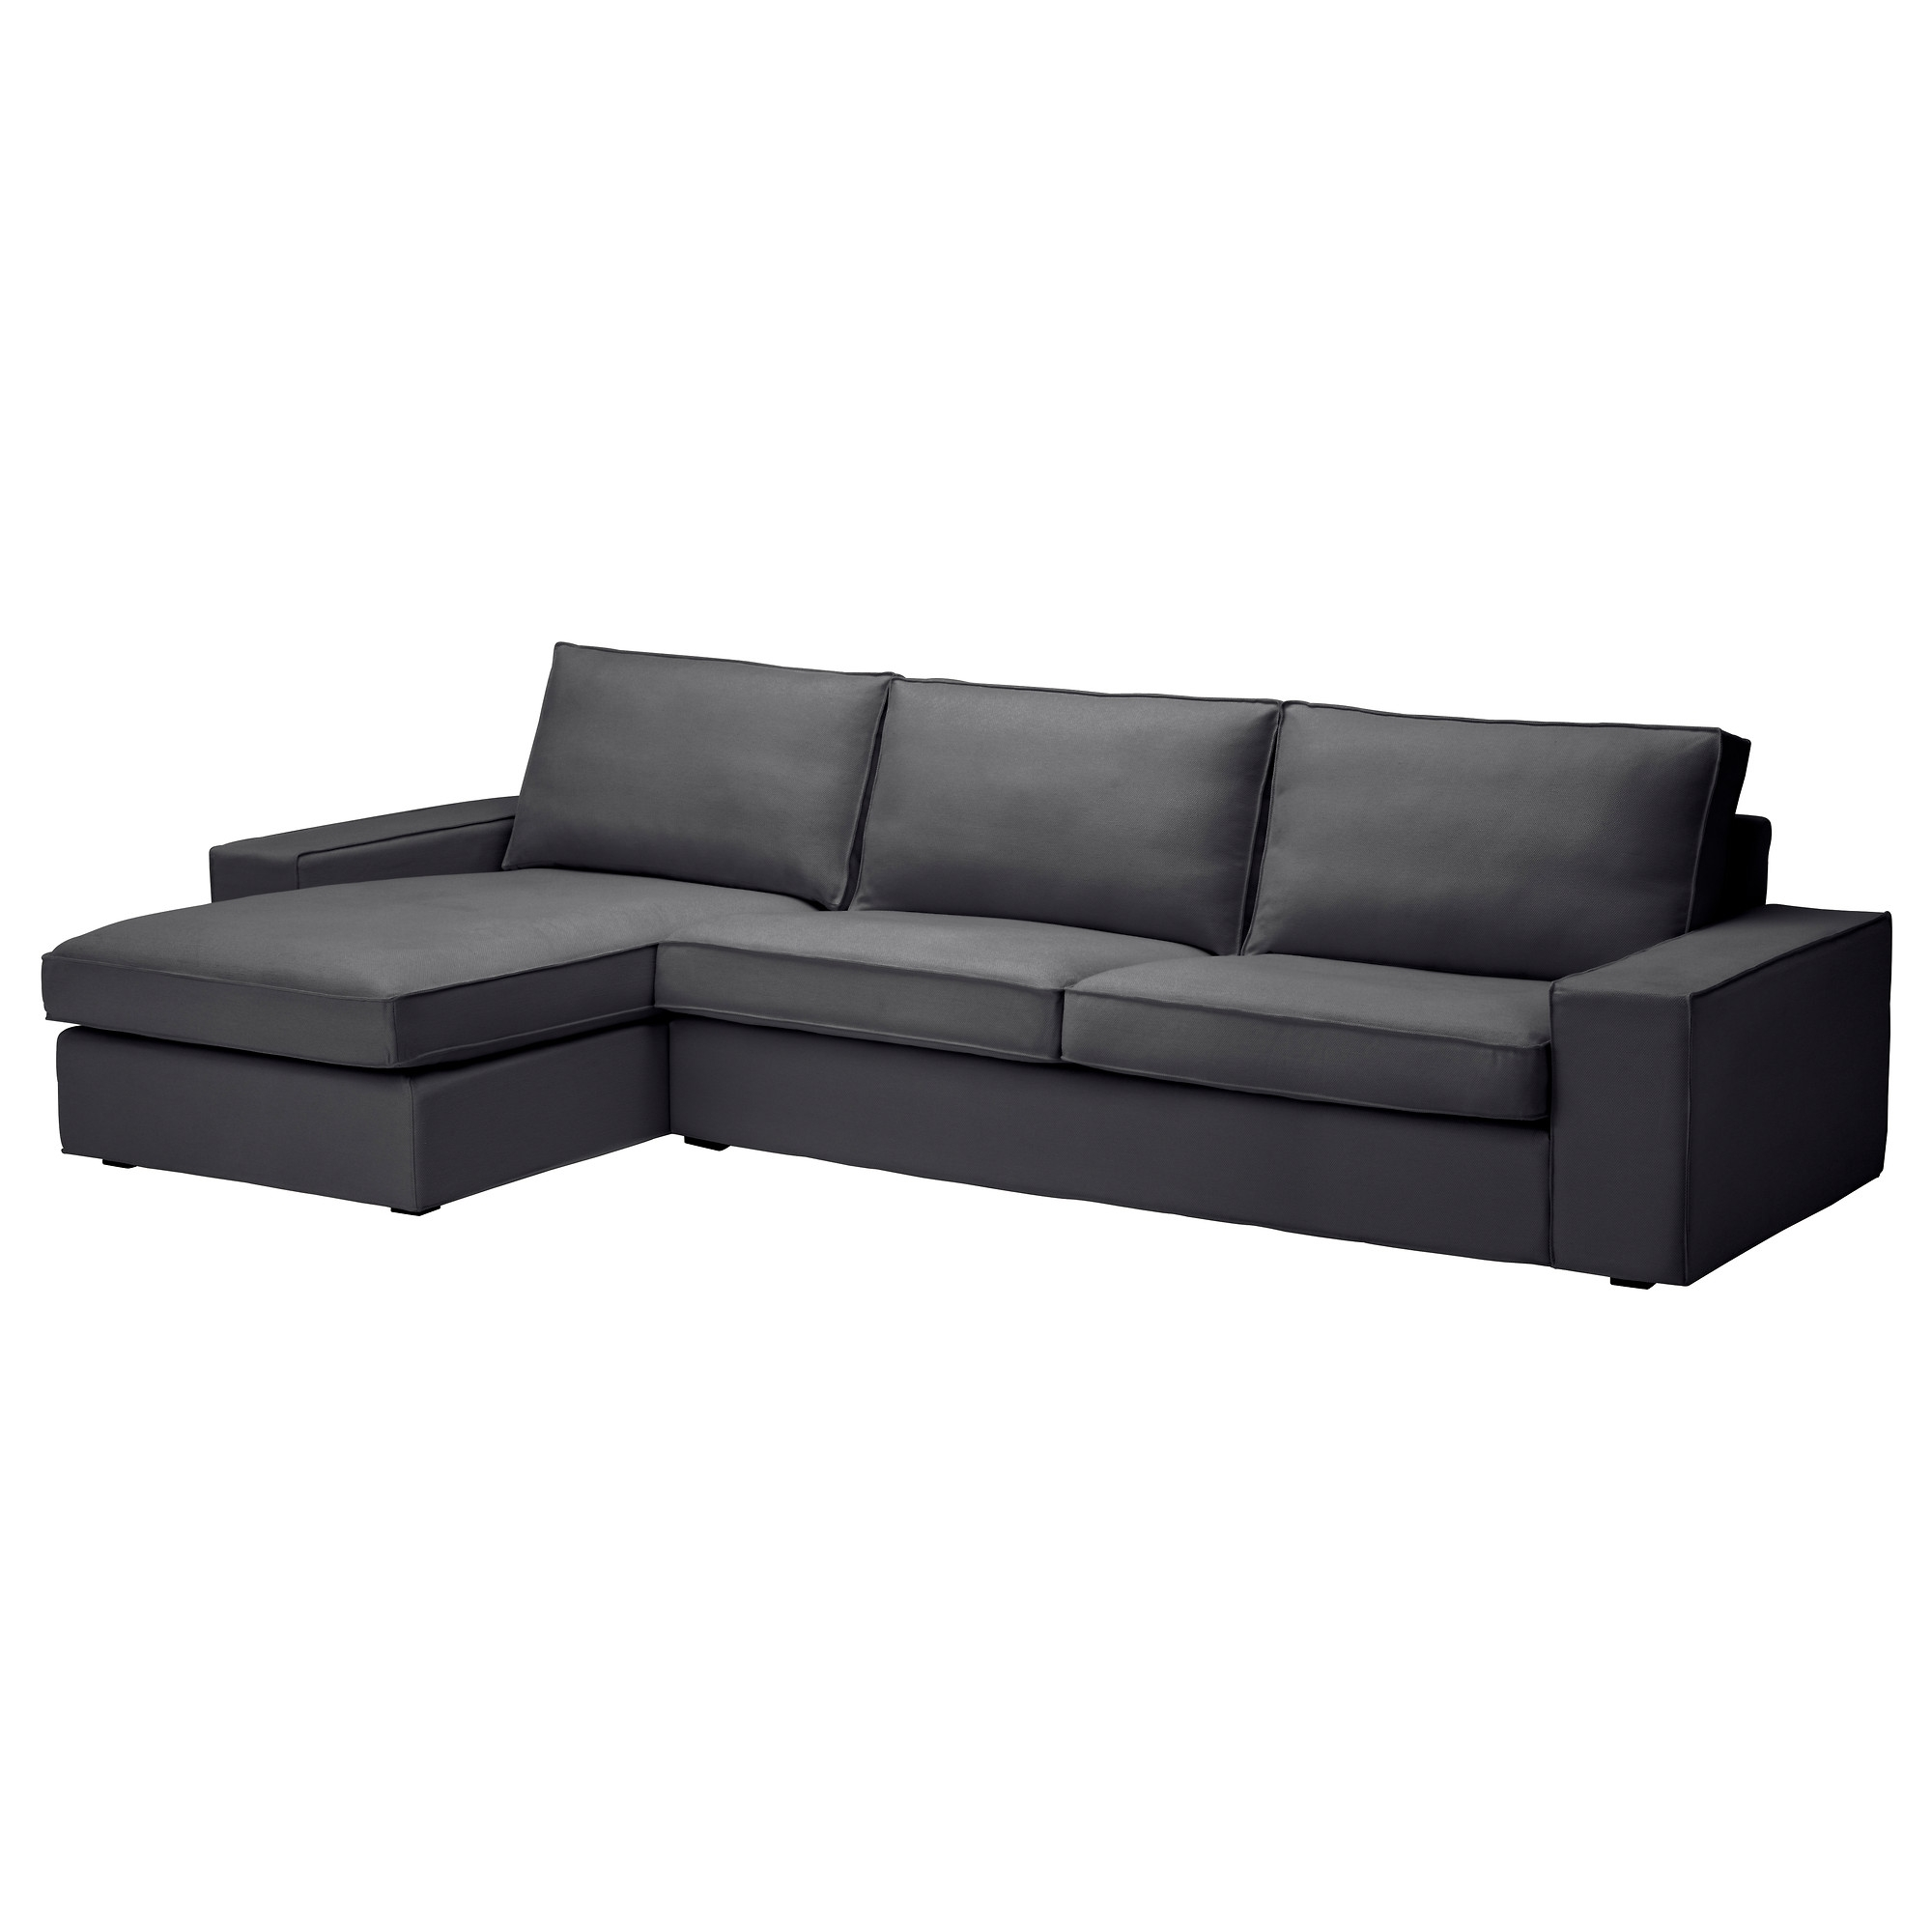 Ikea Sofa 2018 2018 Popular Sectional Sofas At Ikea